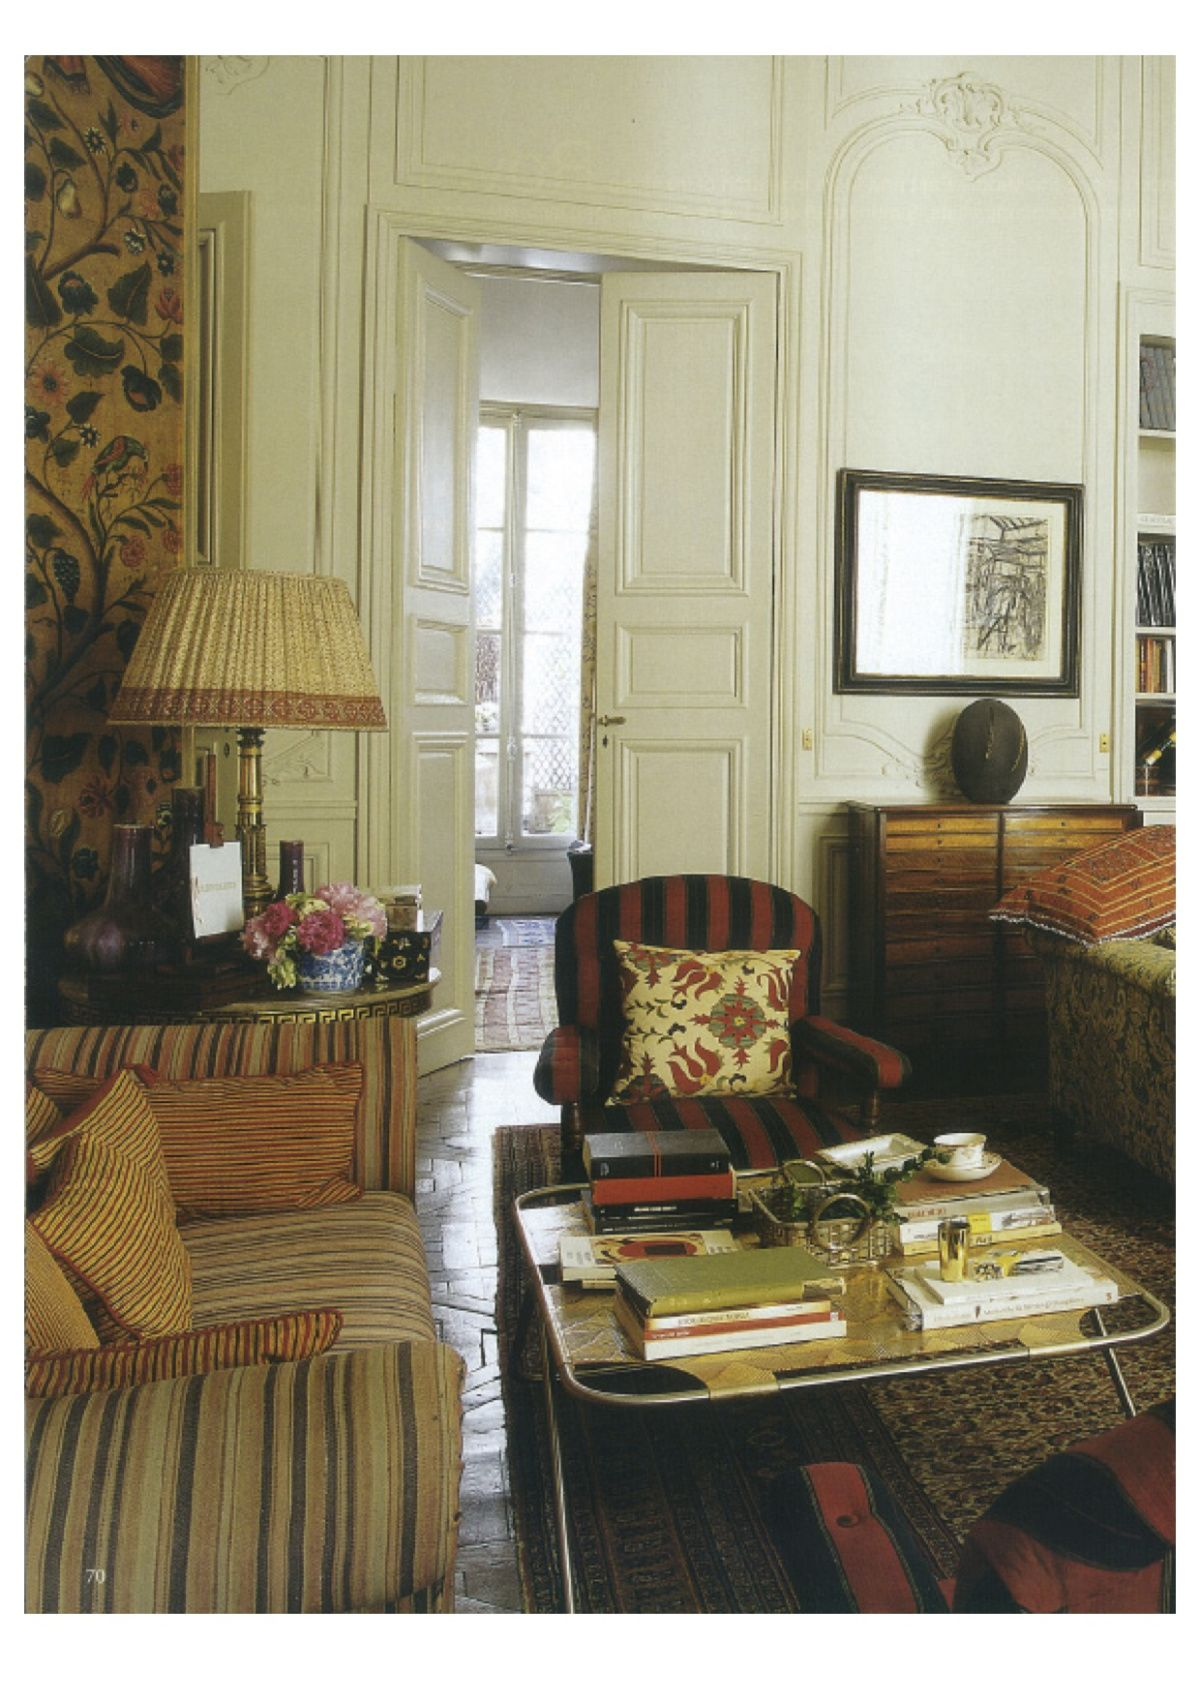 jennifer shorto world of interiors september 2009 paris apartments